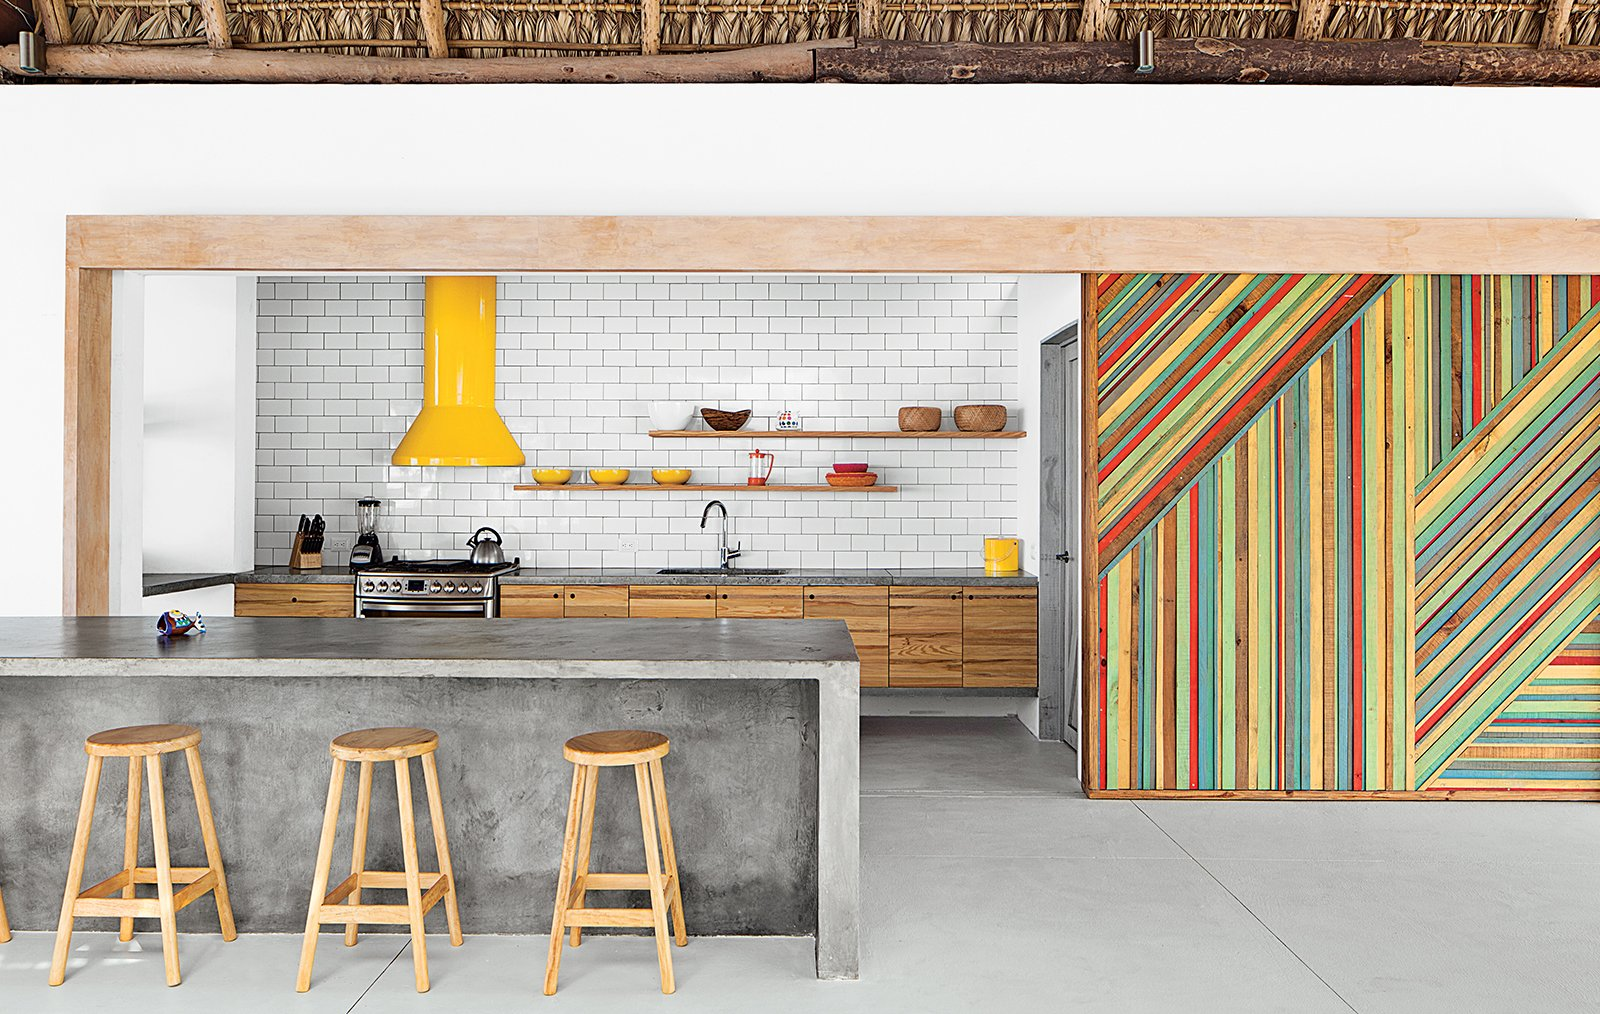 In addition to new appliance trends, homeowners and kitchen designers are also looking for design-savvy materials elsewhere in the kitchen. While marble remains a popular choice, concrete is being used more widely as a kitchen accent. This kitchen in El Salvador features a hefty concrete island. Tagged: Kitchen, Concrete Counter, Concrete Floor, Wood Cabinet, and Range Hood.  Photo 6 of 8 in New Kitchen Materials You Should Know About